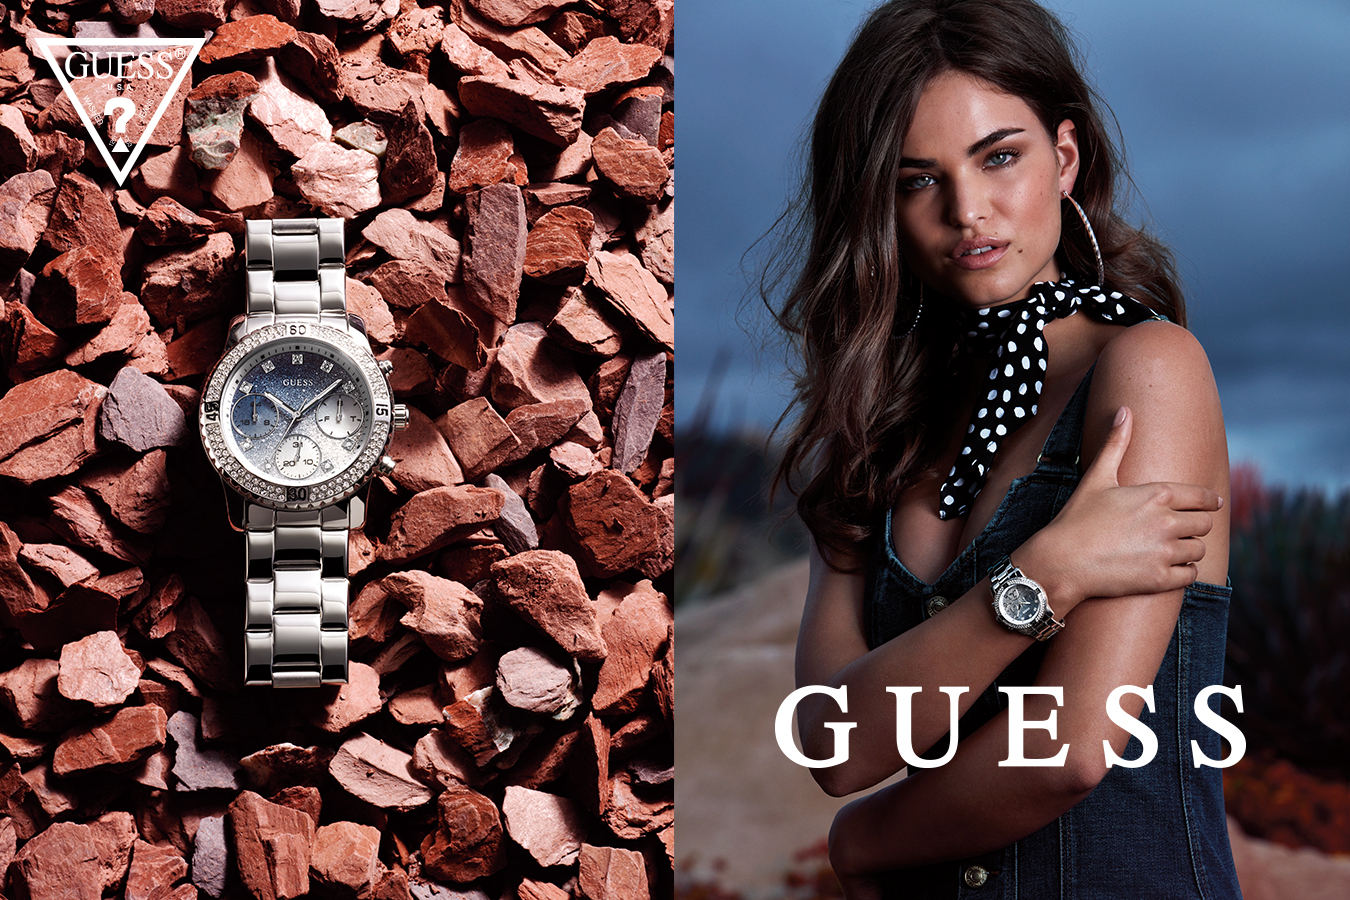 guess_1